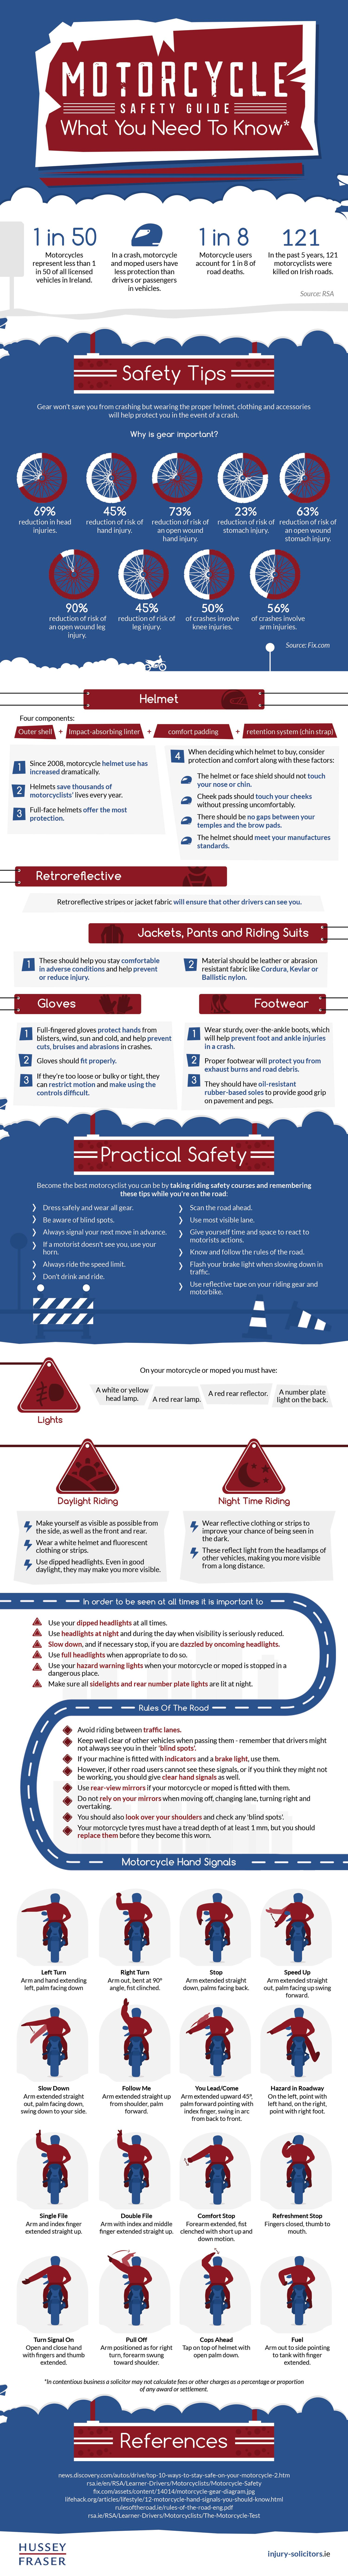 2016 Motor Safety Guide Infographic Motorcycle Safety Safety Guide Motorcycle Travel